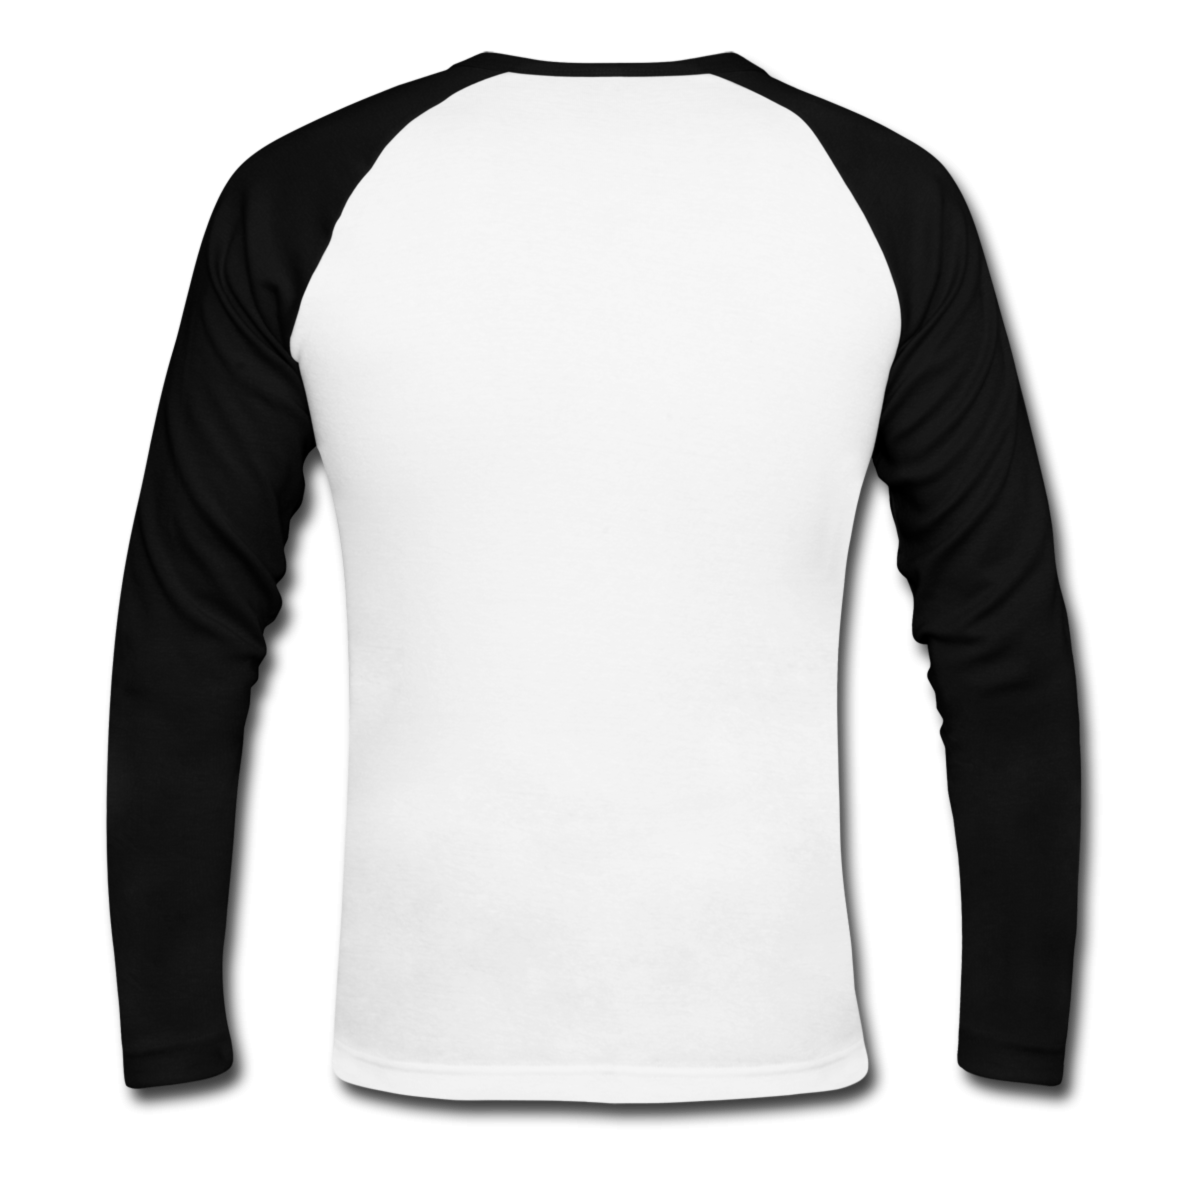 Blank t silhouette at. Pants clipart long sleeve shirt jpg black and white